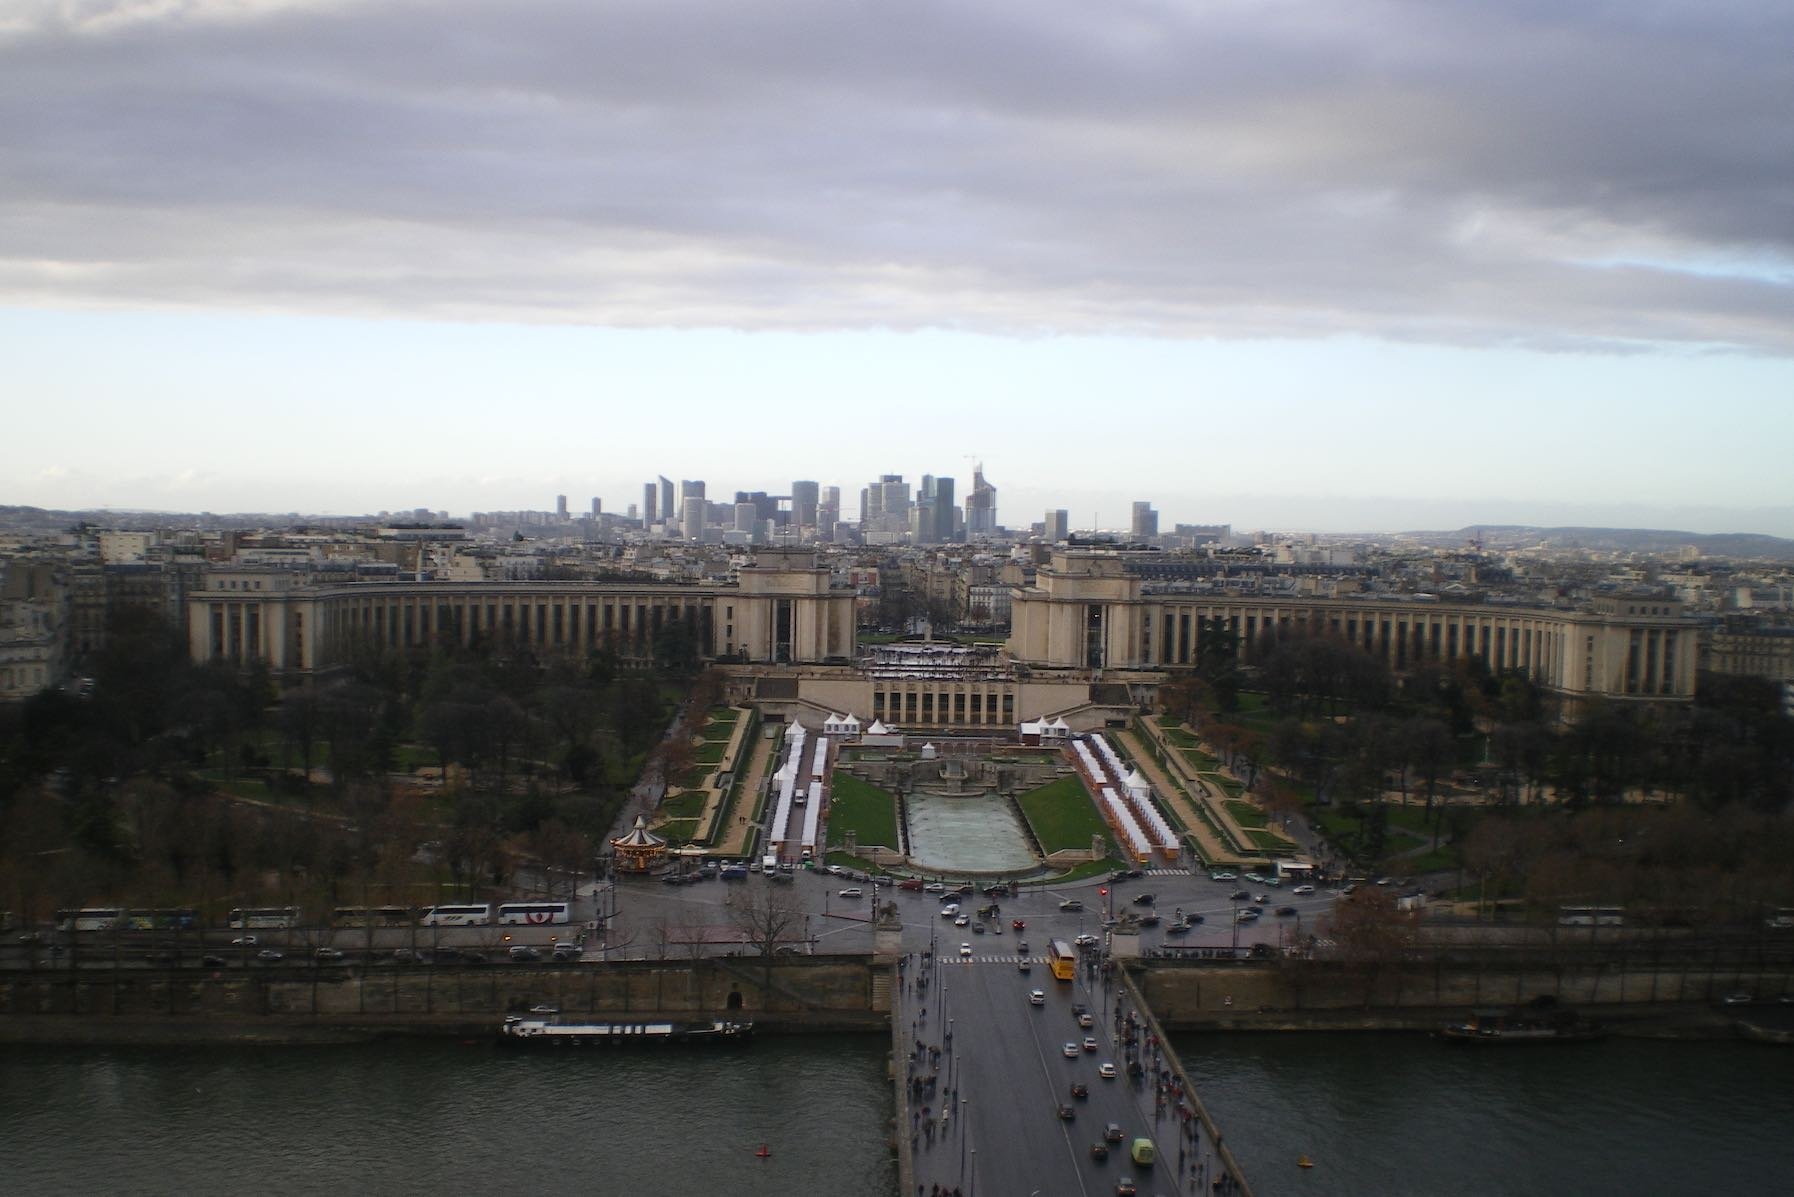 View from the Eiffel Tower in Paris with cloud bank